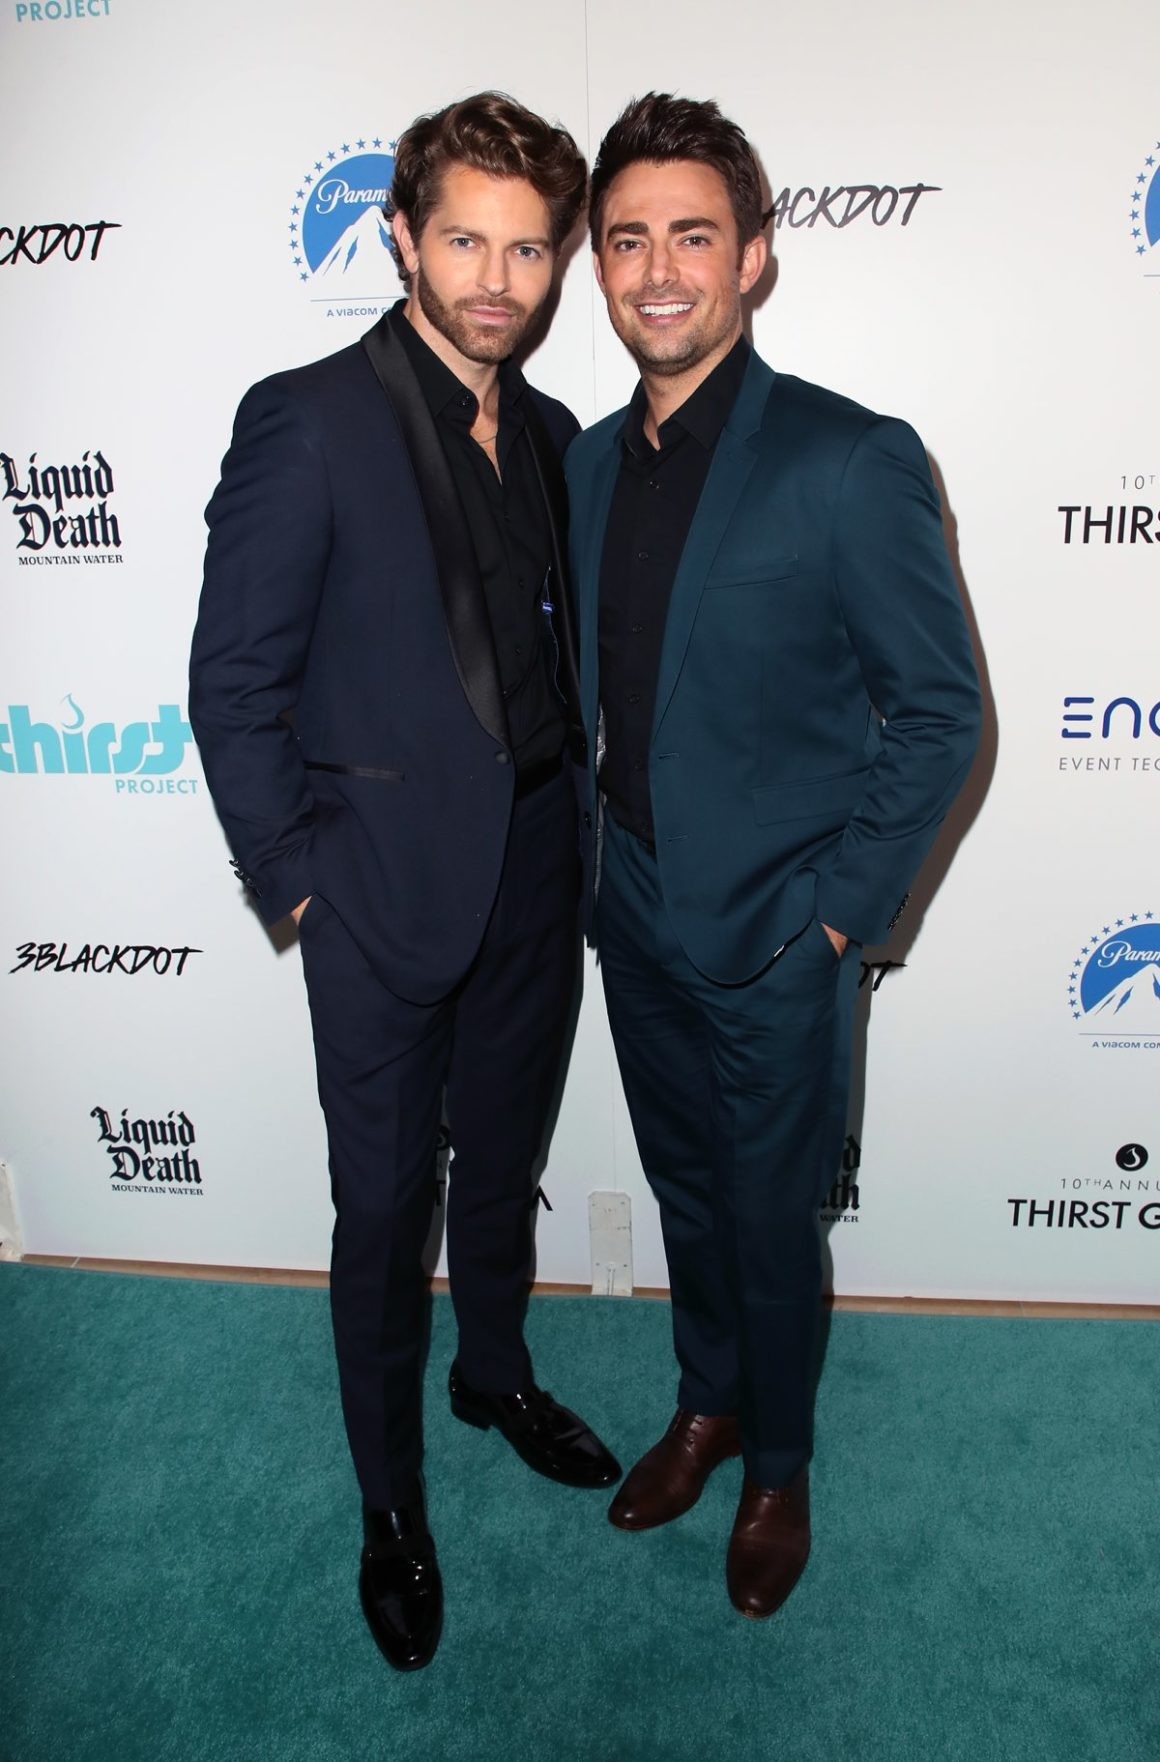 Thirst Project 10th Annual Thirst Gala - Arrivals